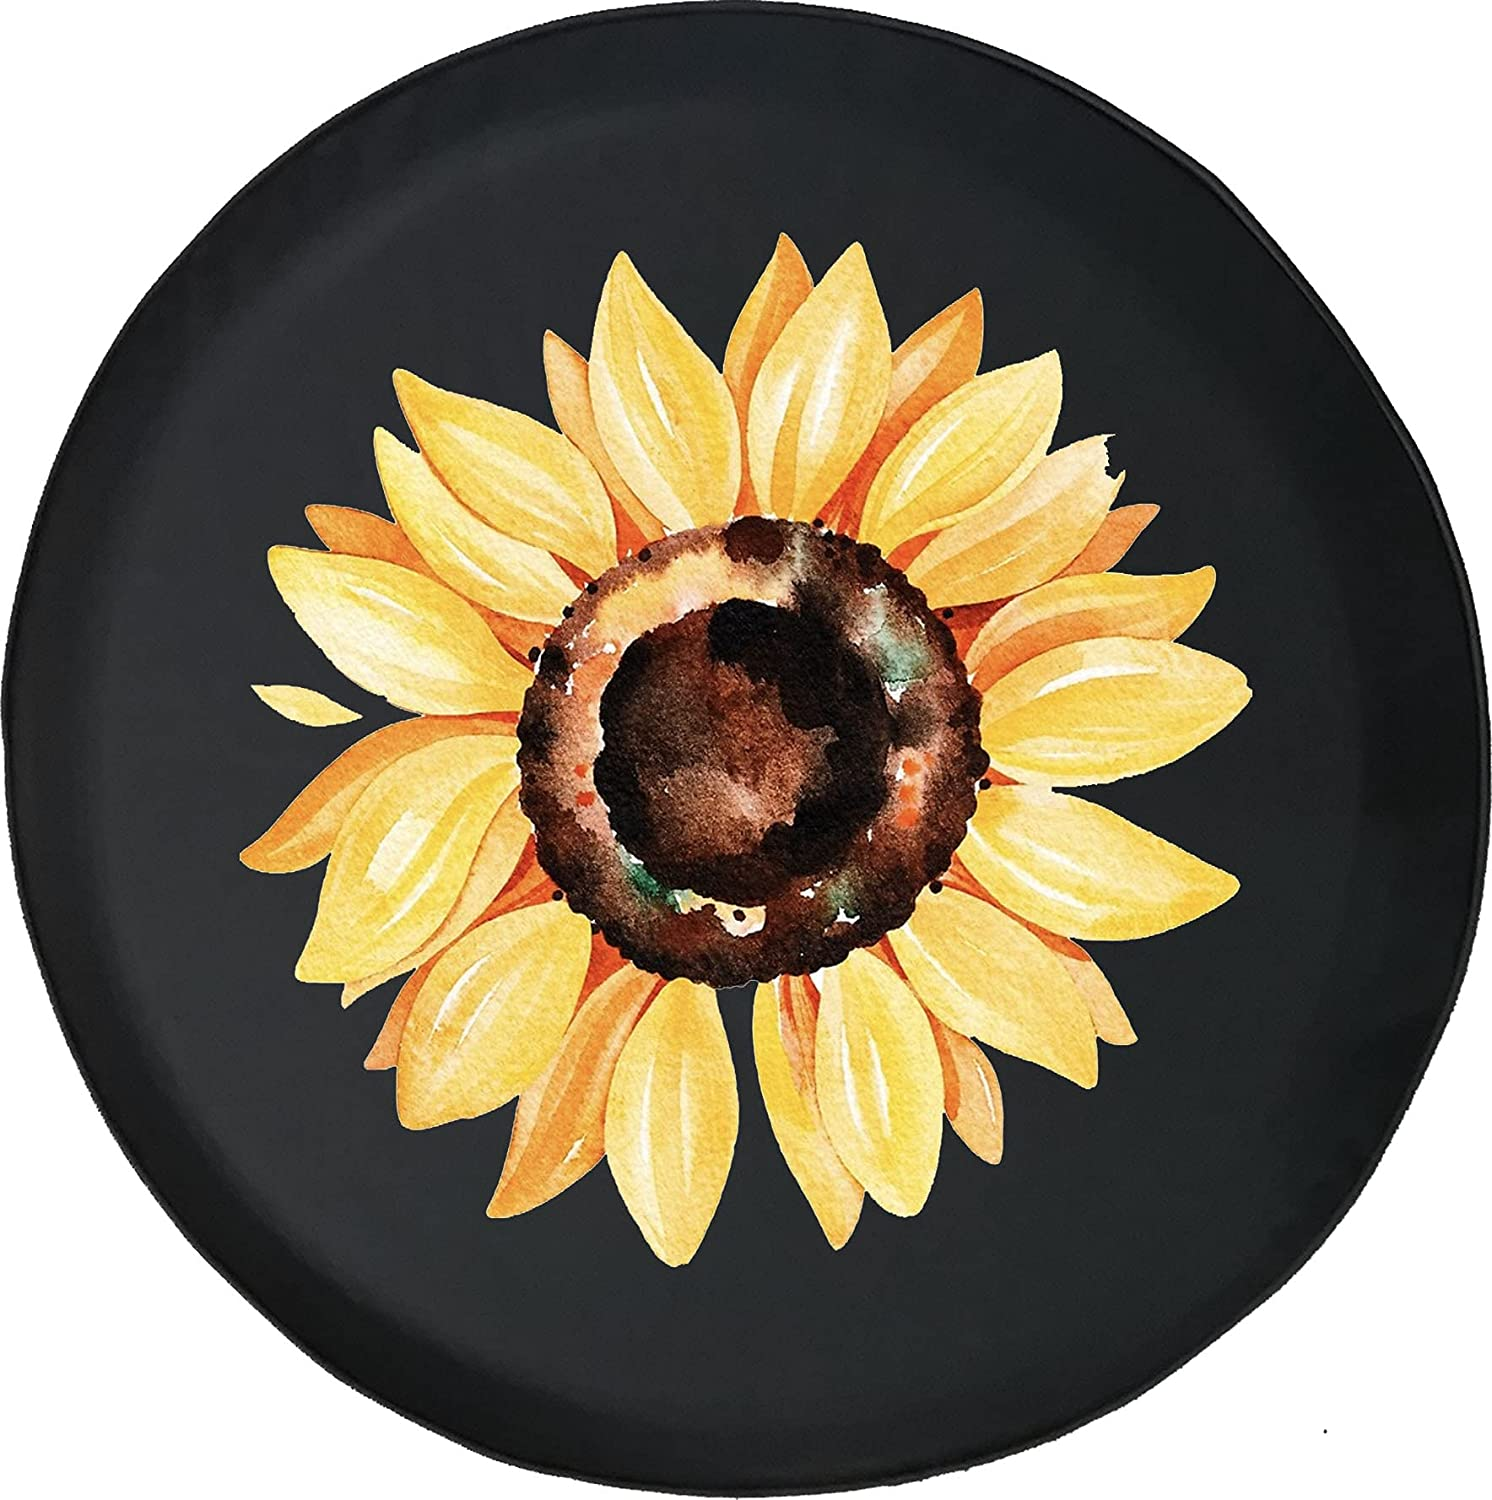 Painted Sunflower Fits Max 54% OFF SUV or RV Spare Trailer Max 83% OFF Accessories Tire